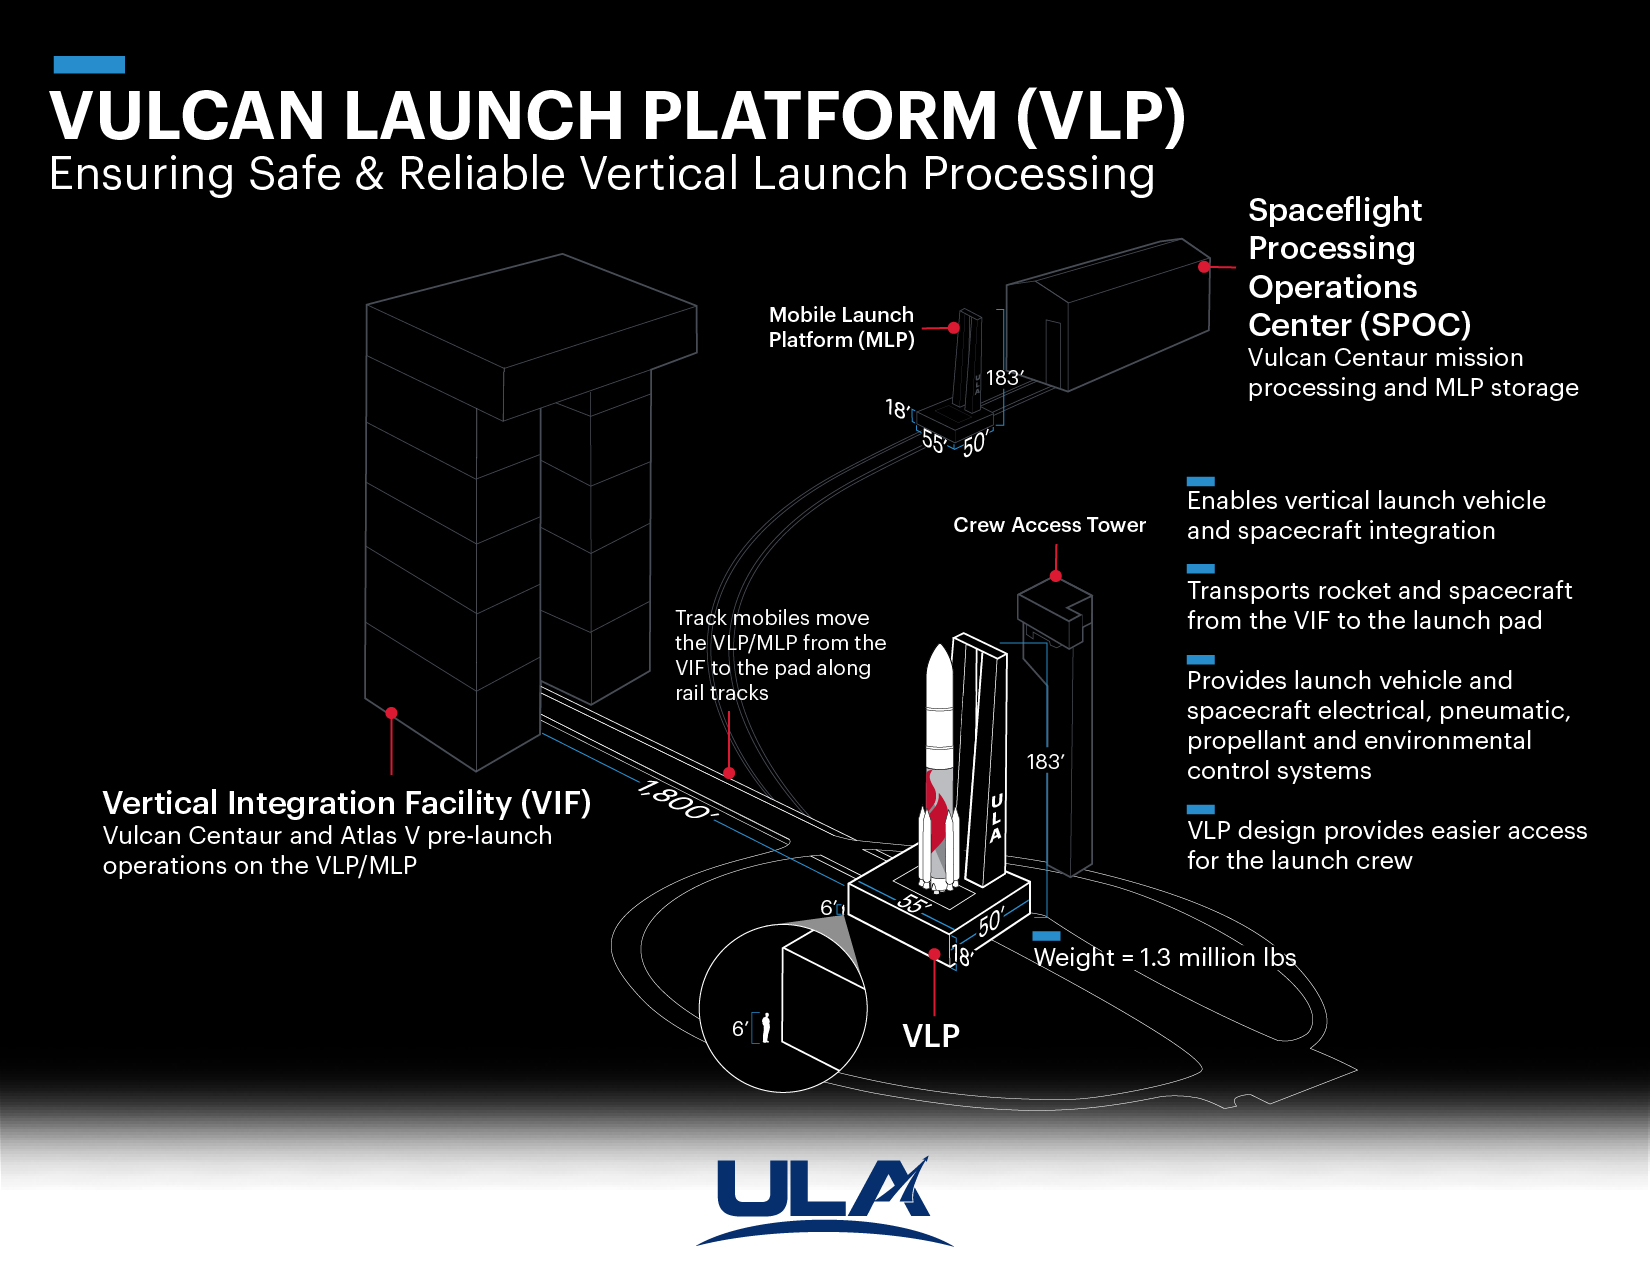 Illustration by United Launch Alliance